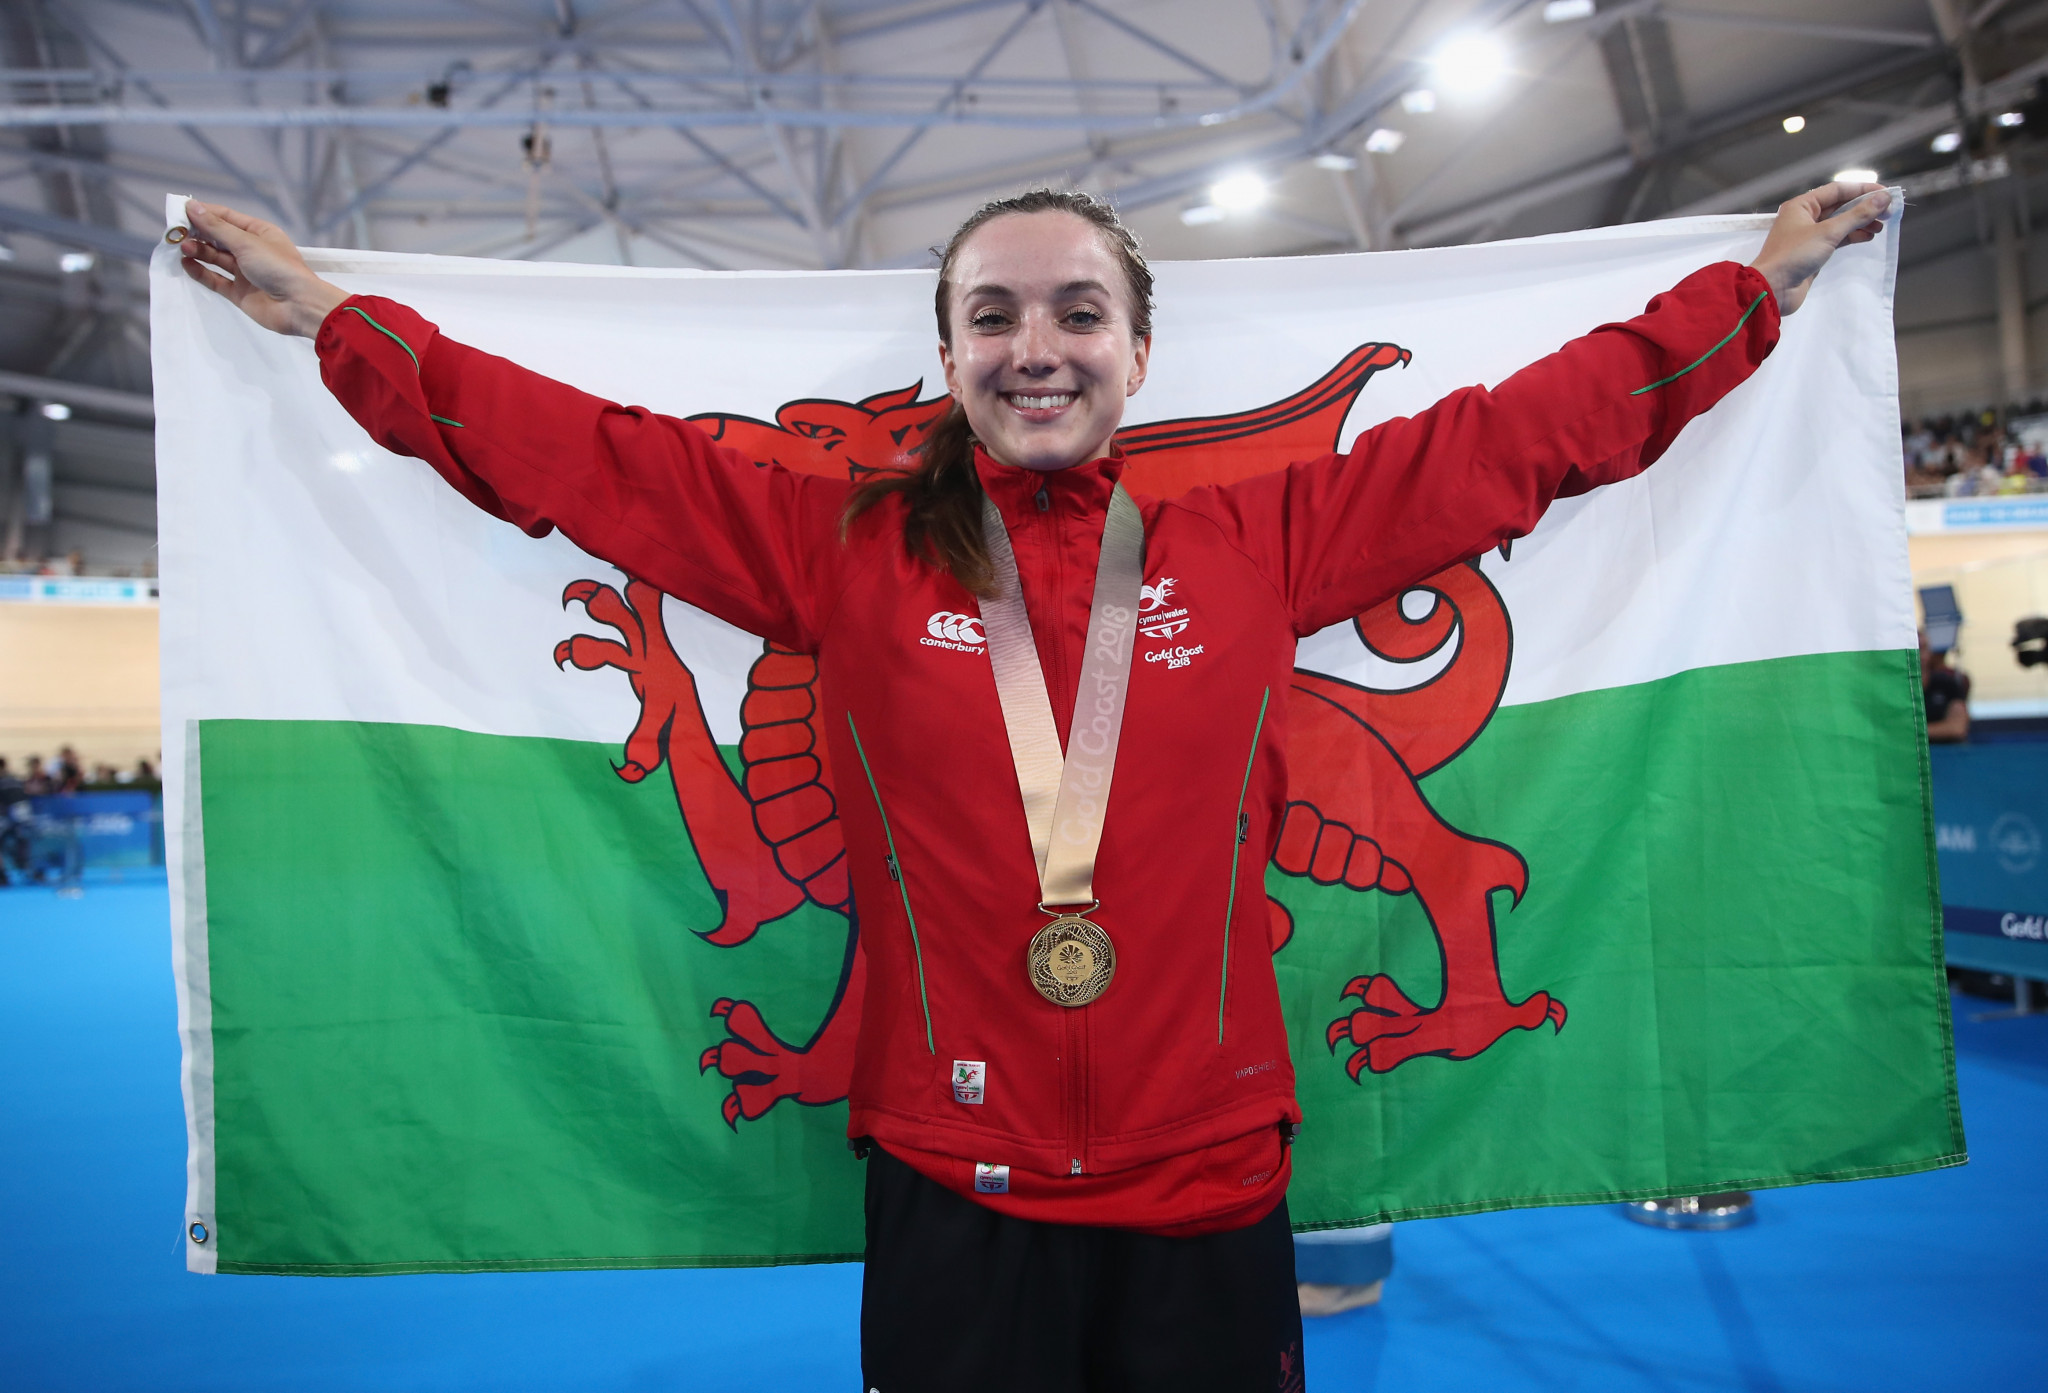 Commonwealth Games Wales launches official countdown to Birmingham 2022